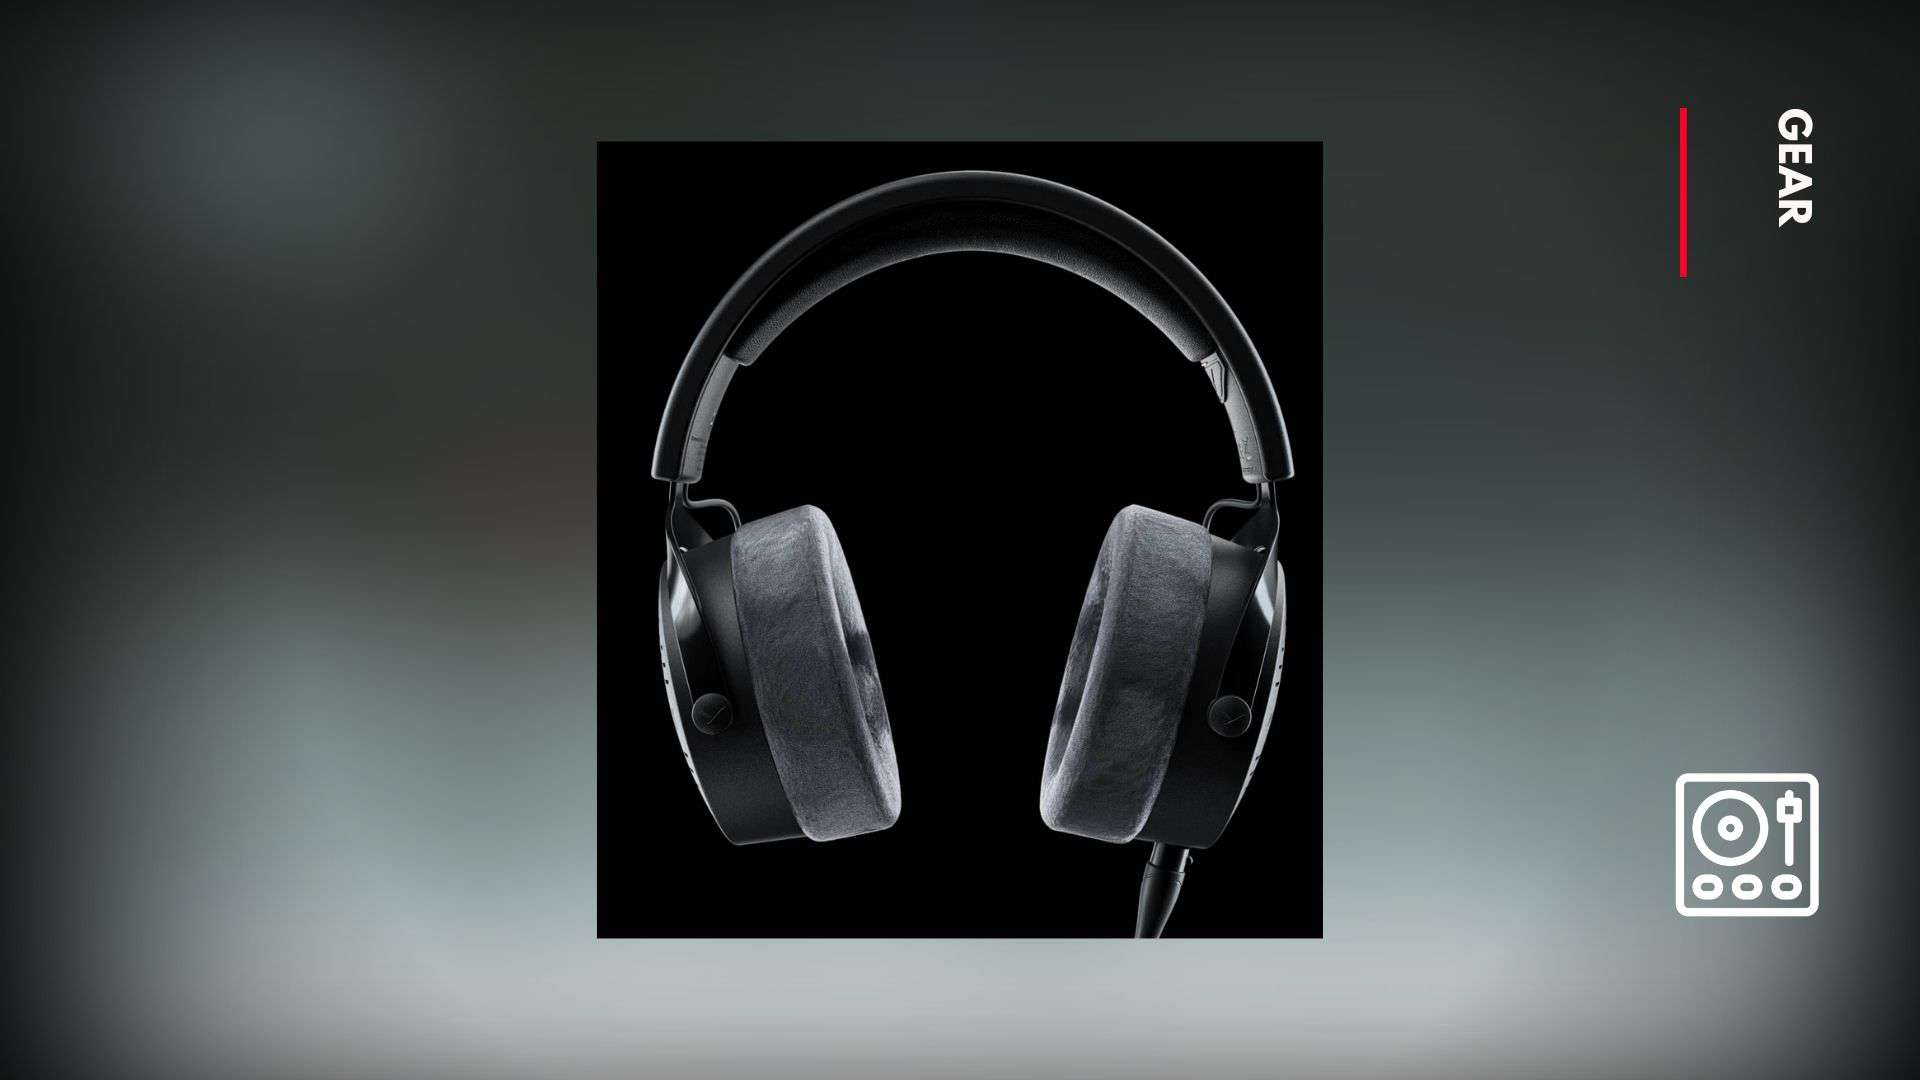 Beyerdynamic launched new headphones and microphone series